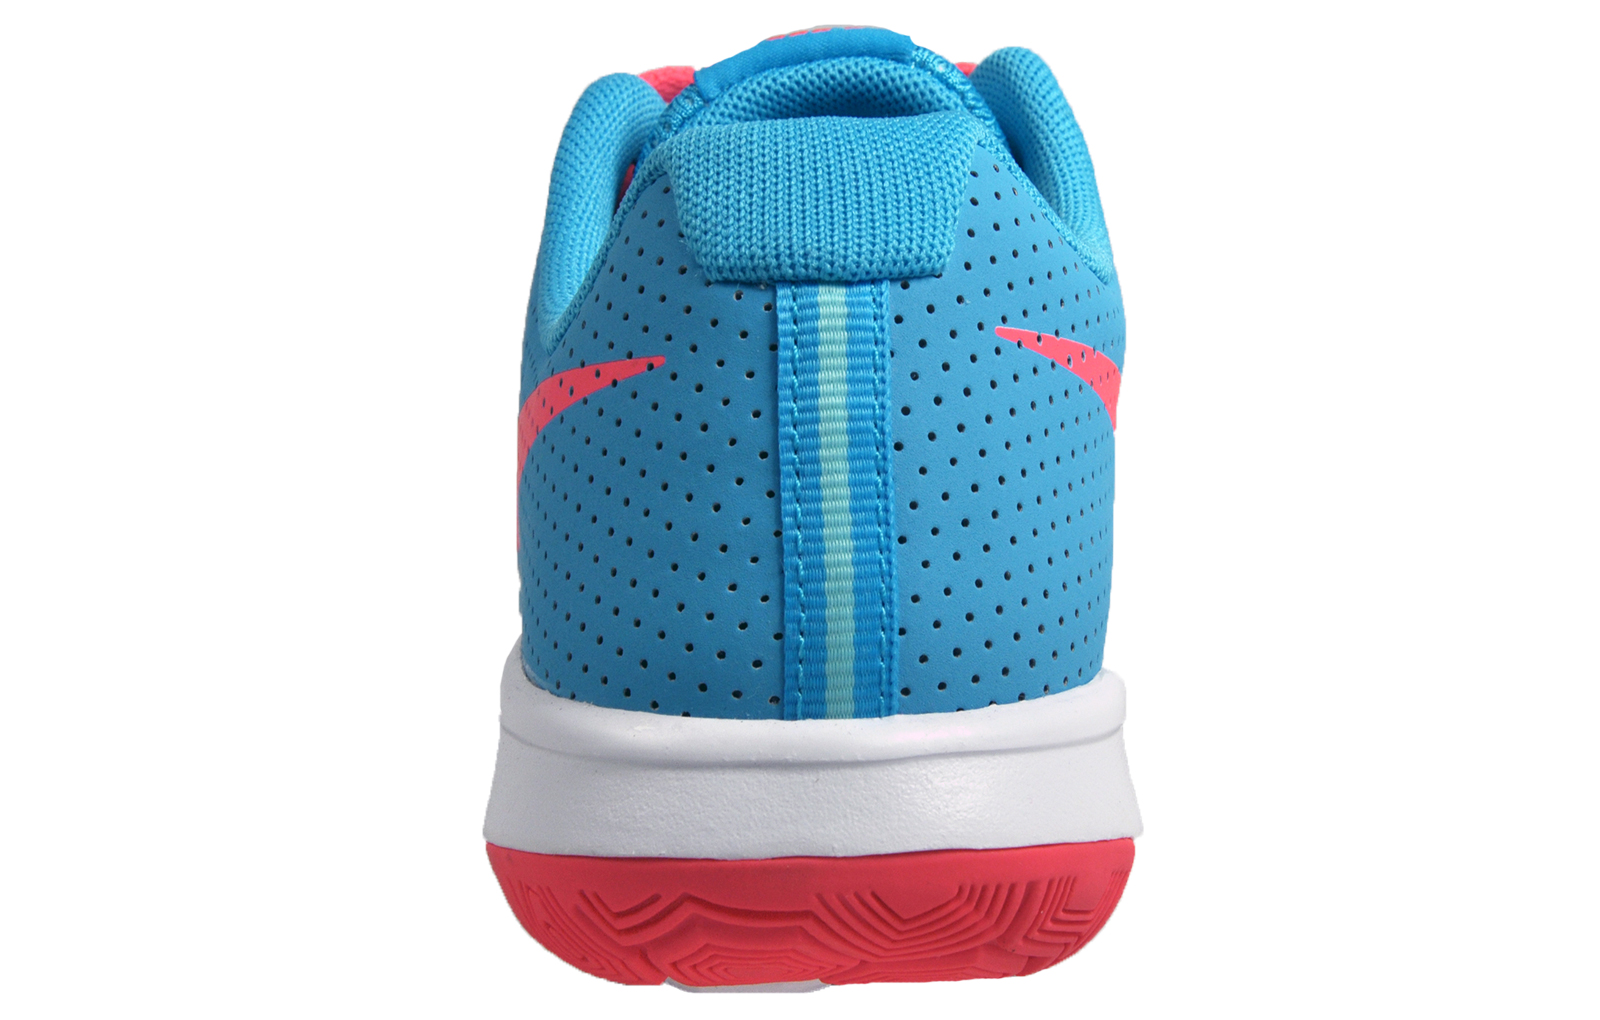 99701bd99a78e Nike Flex Experience 5 Womens Girls Running Shoes Fitness Gym Trainers Blue